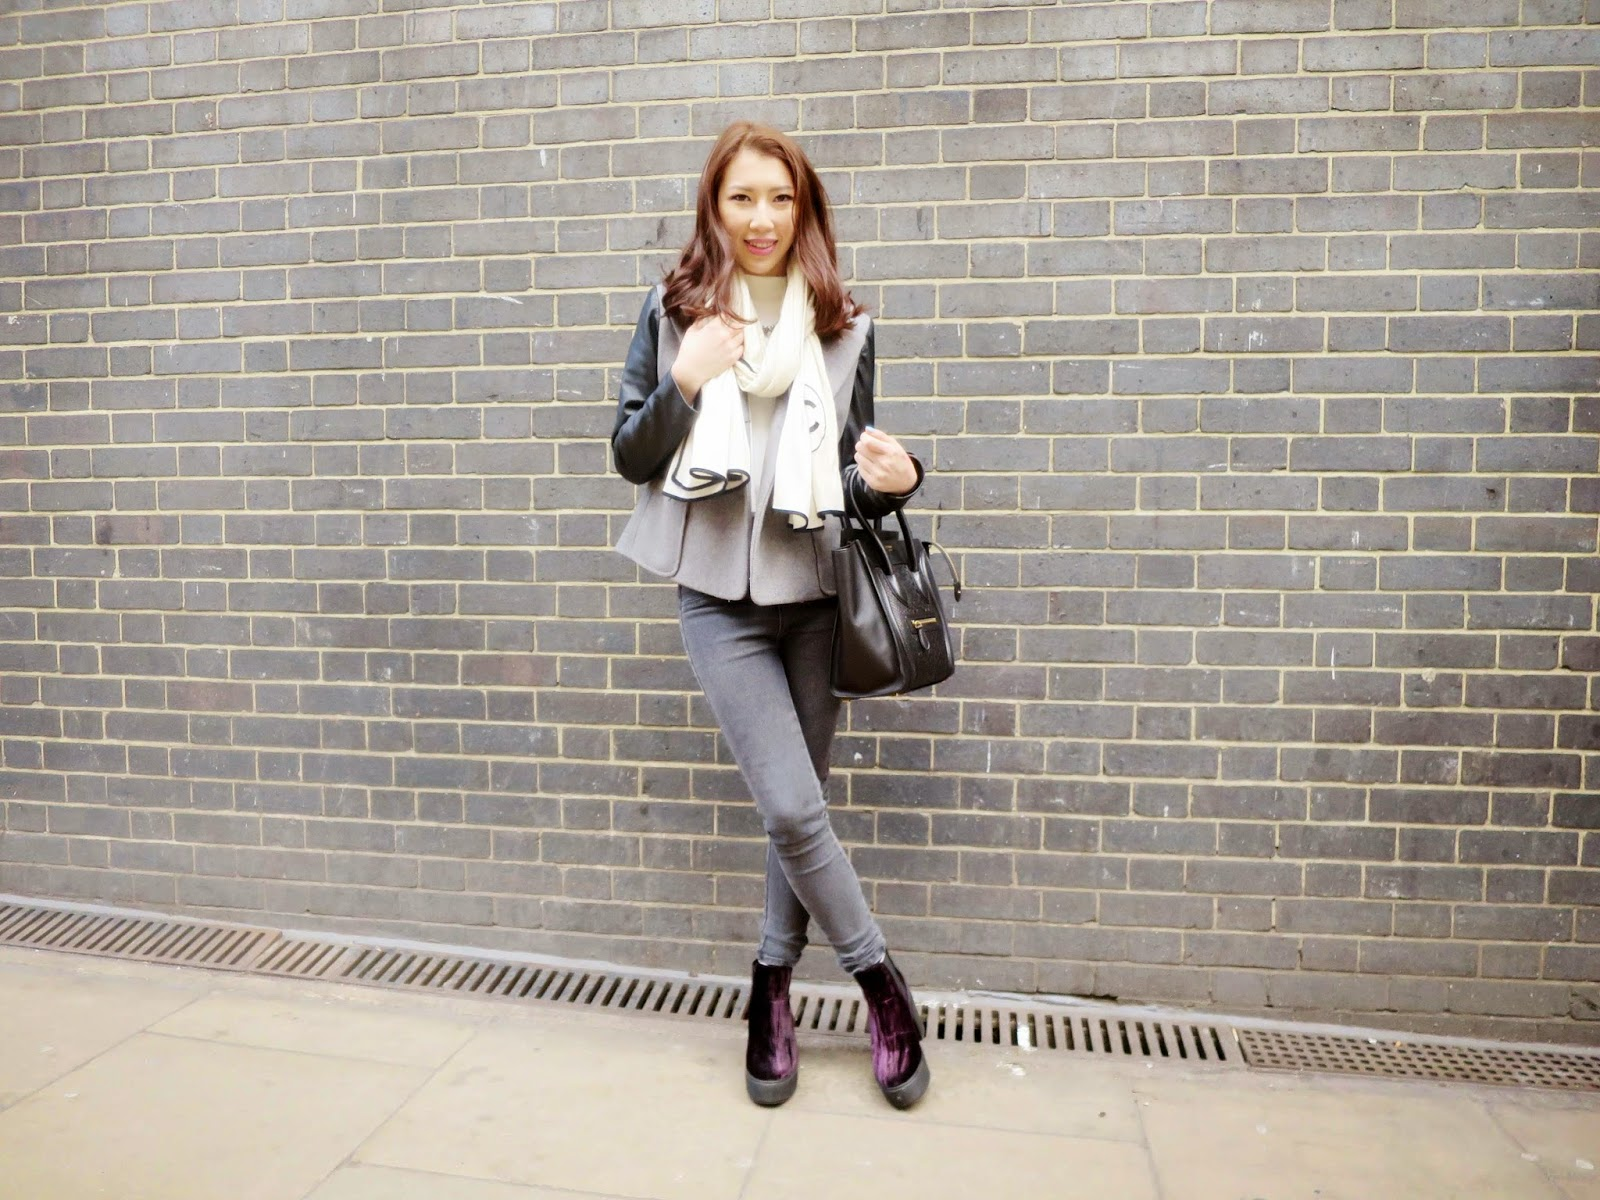 My grey outfit blended into the grey walls of London